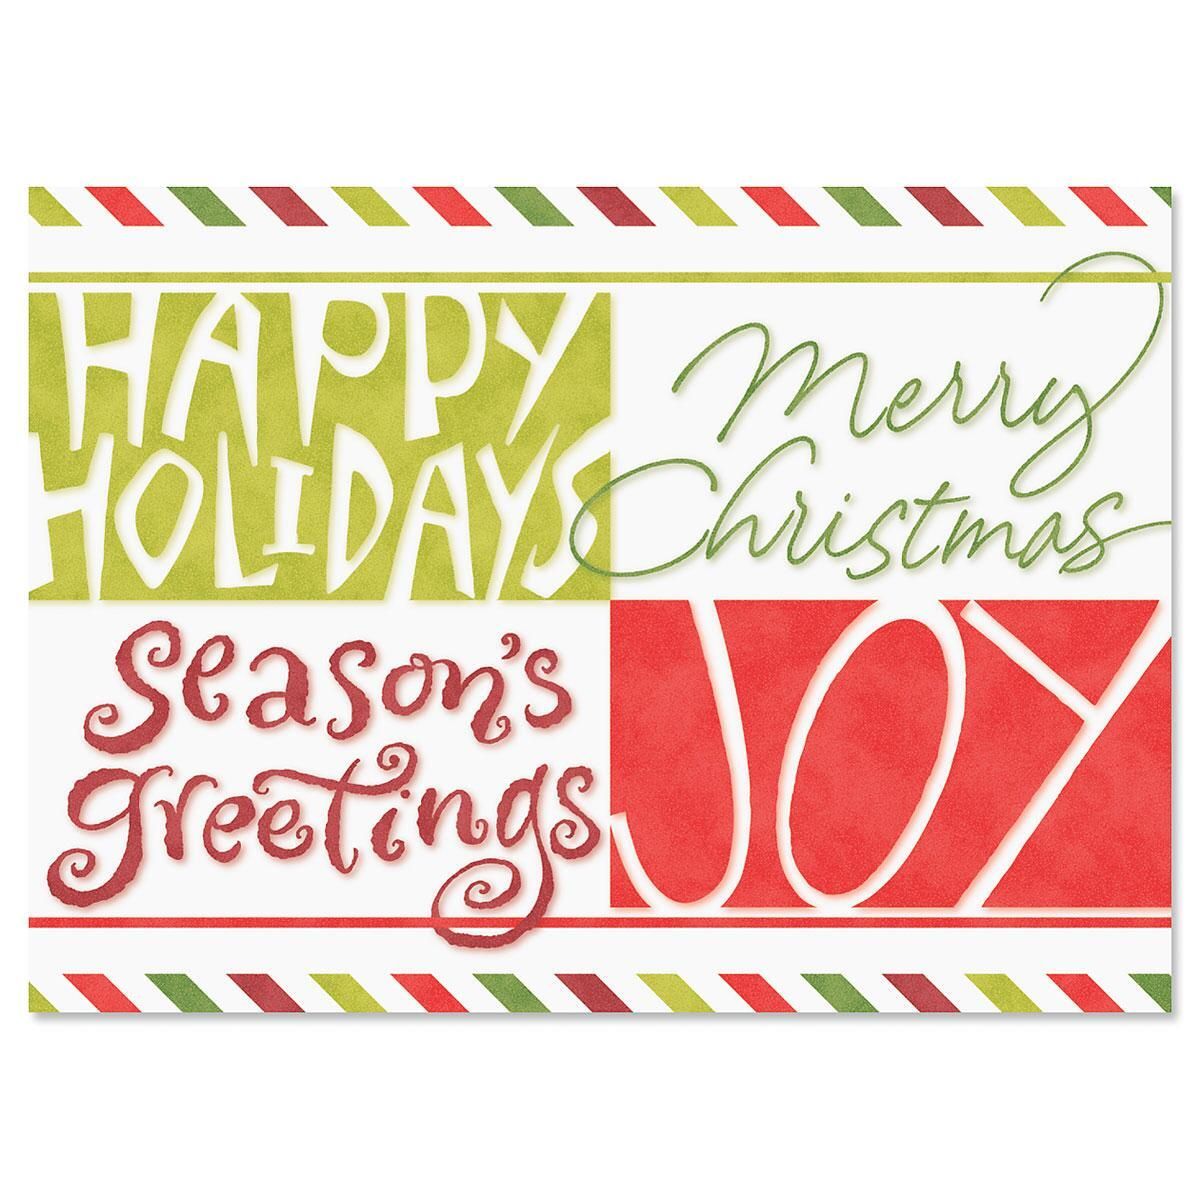 Big Greetings Nonpersonalized Christmas Cards - Set of 18